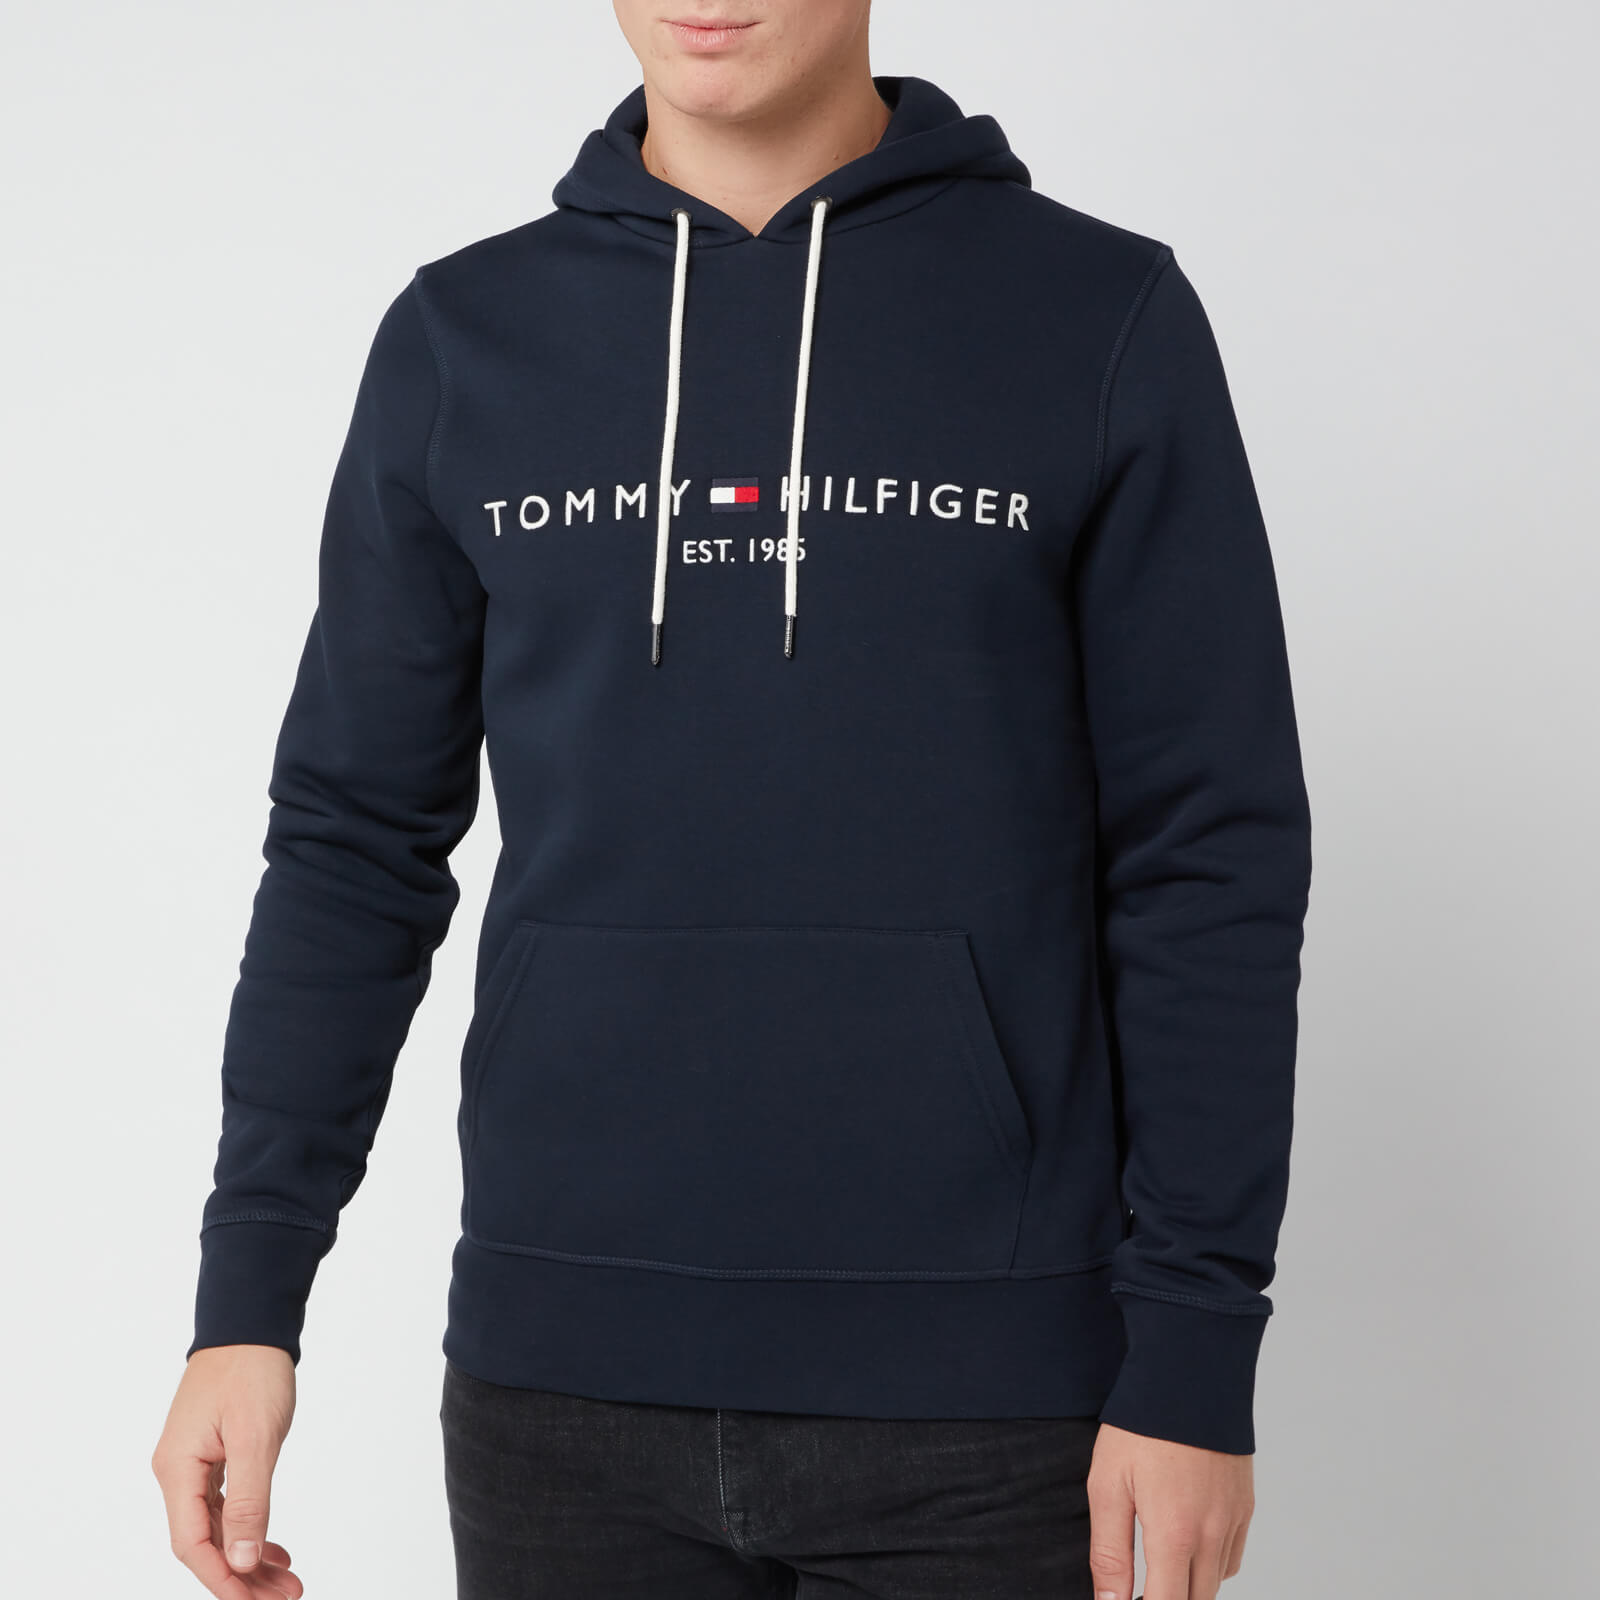 stati Uniti vendita limitata economico in vendita Tommy Hilfiger Men's Tommy Logo Hoodie - Sky Captain Mens Clothing ...